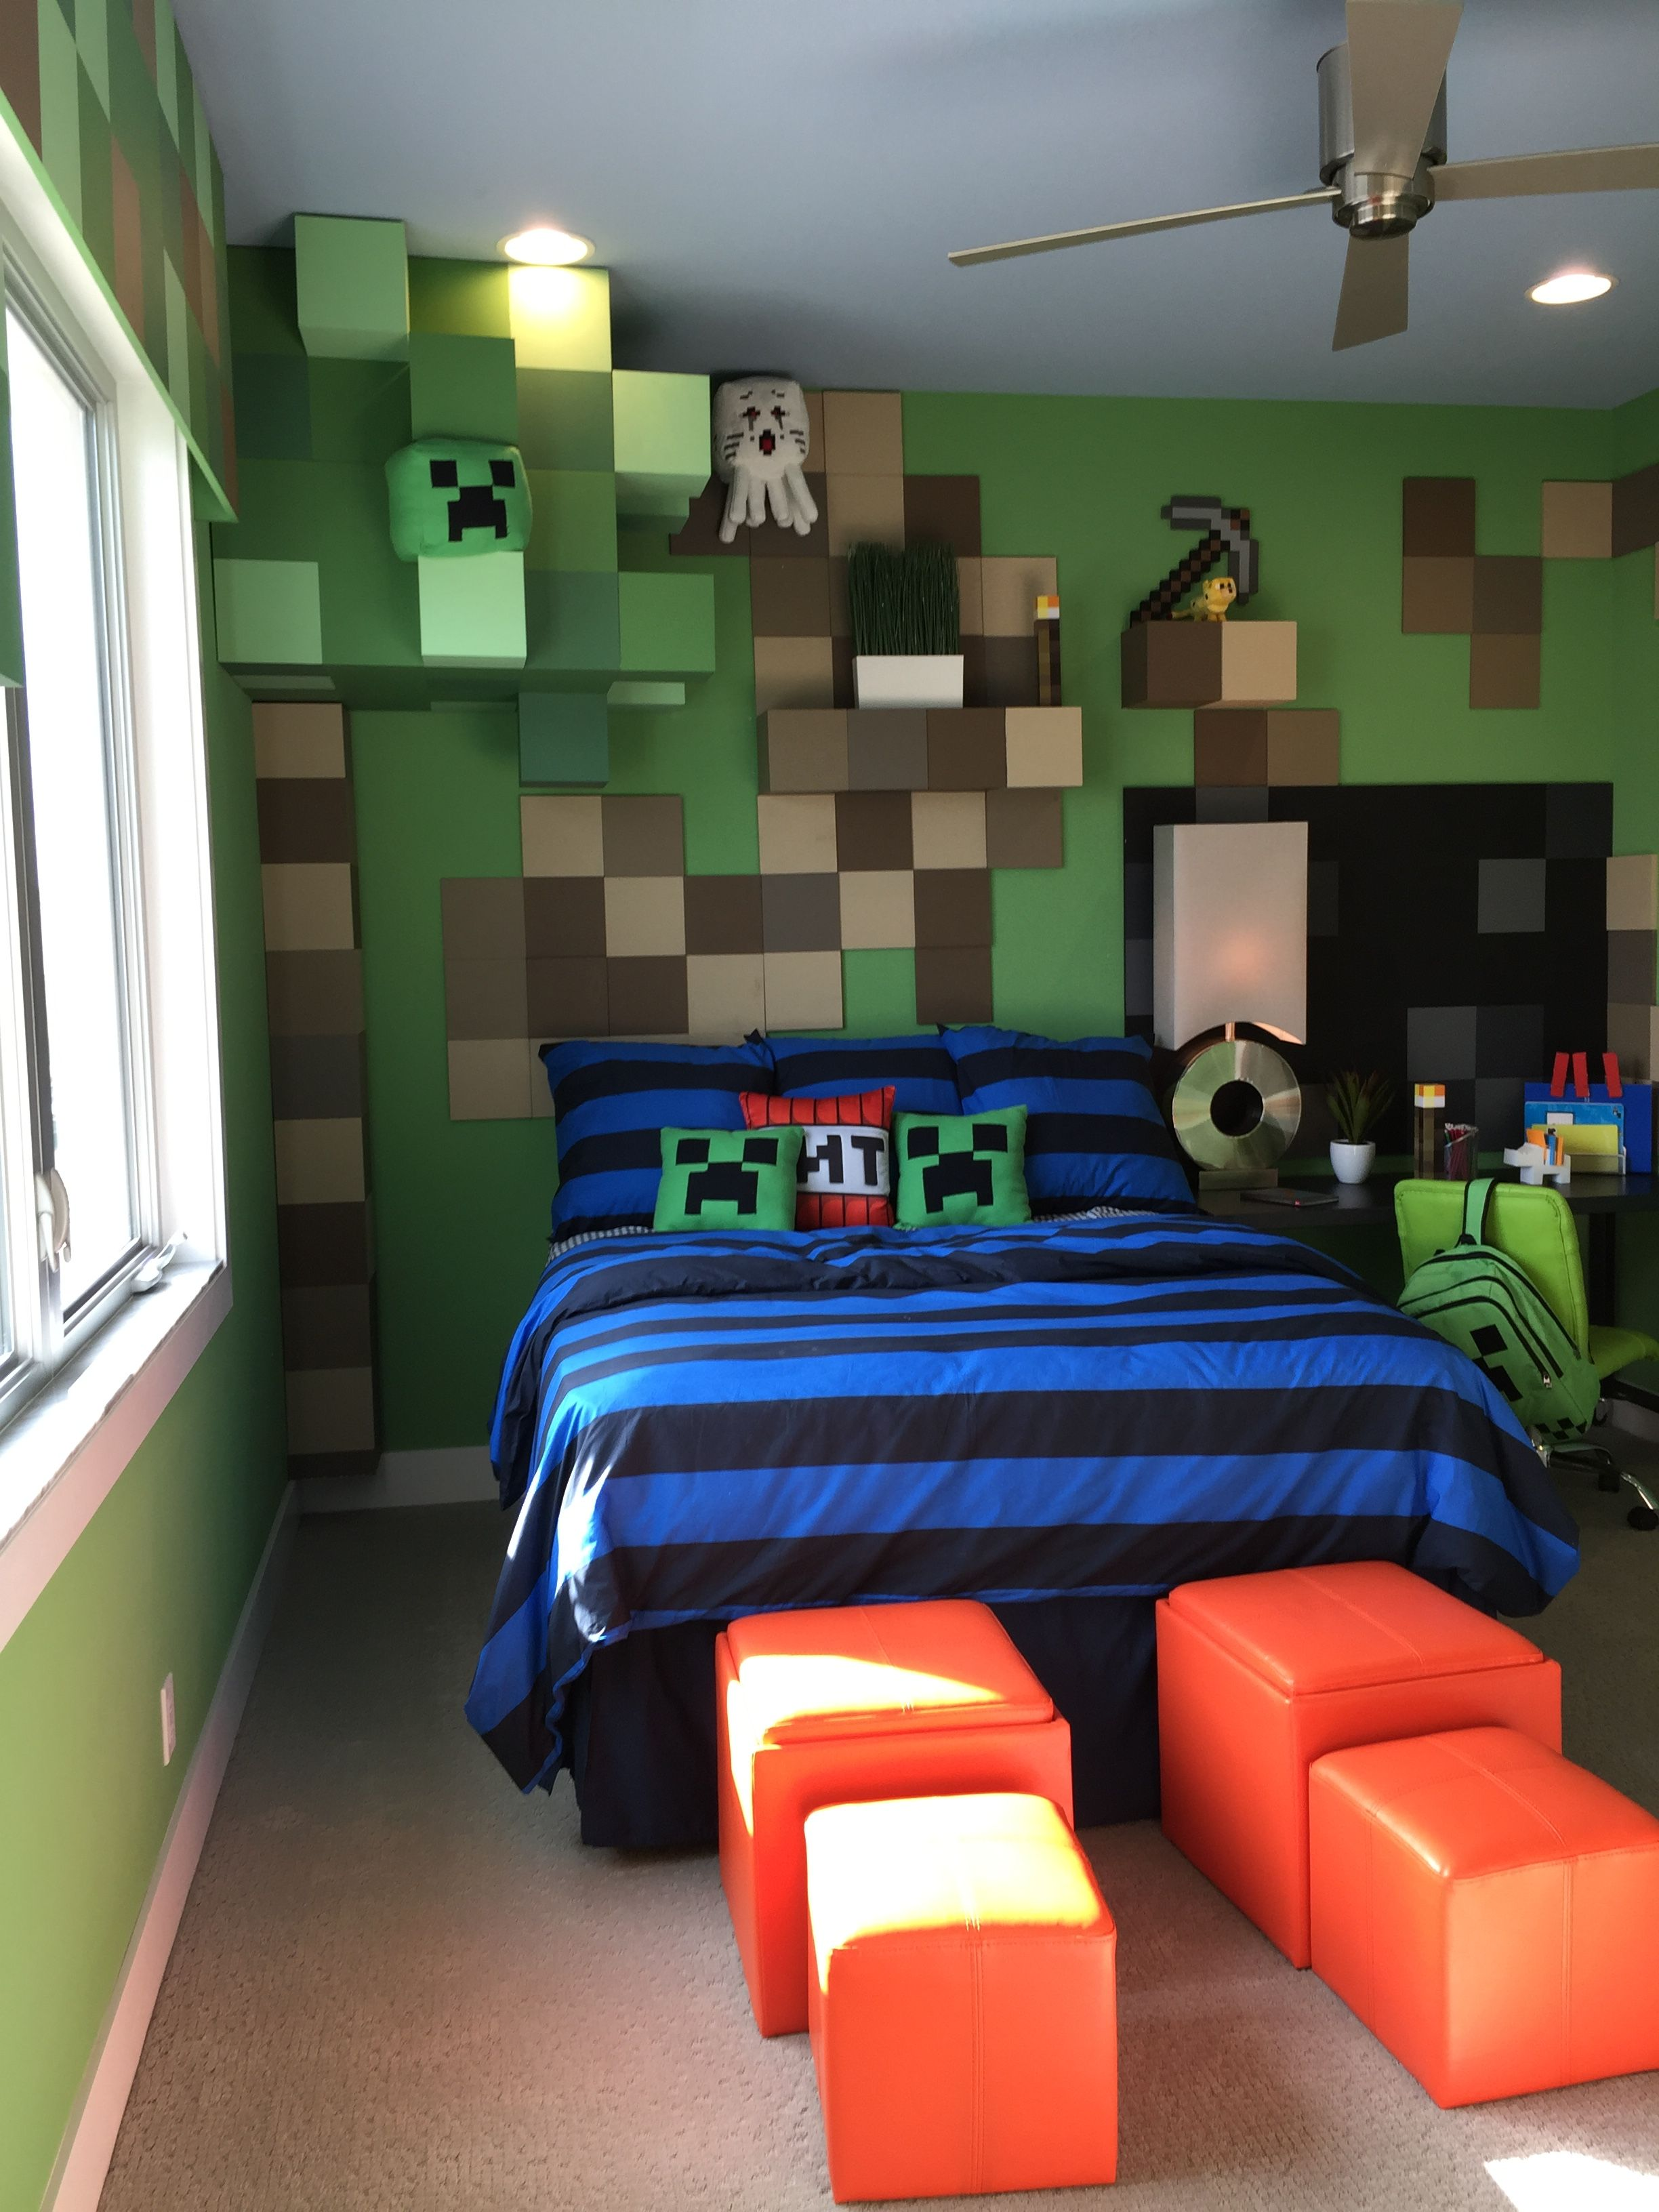 Great Minecraft Styled Room Cool Bedrooms For Boys Minecraft